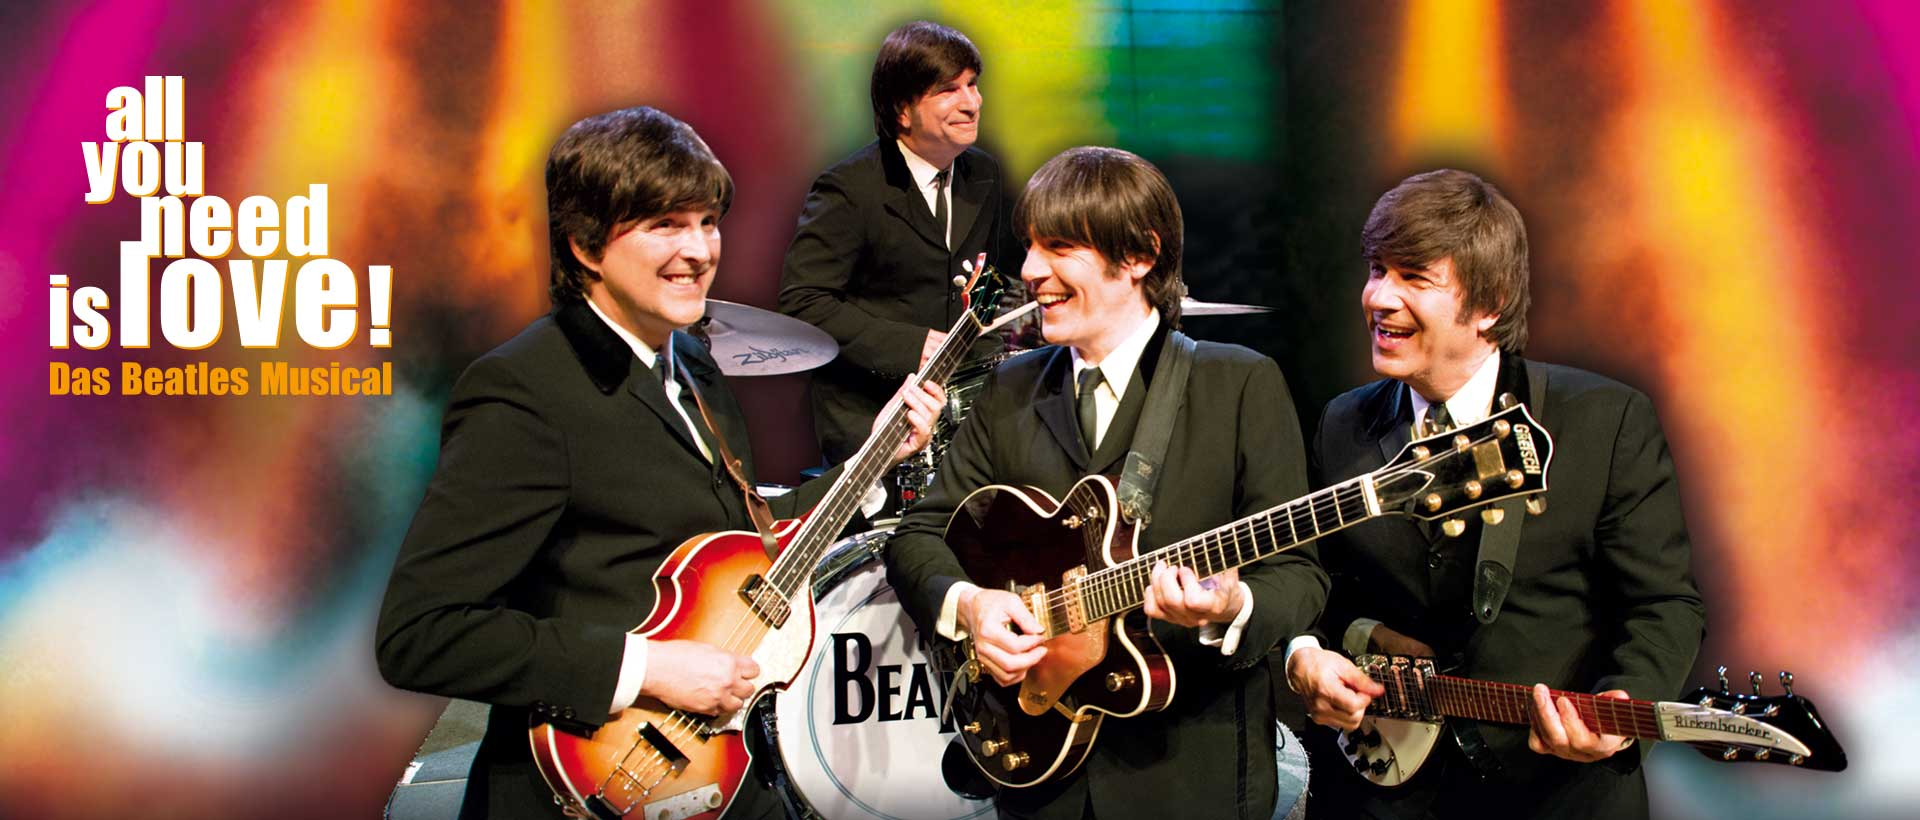 All you need is love! Das Beatles Musical - 09.07. - 15.08.2021